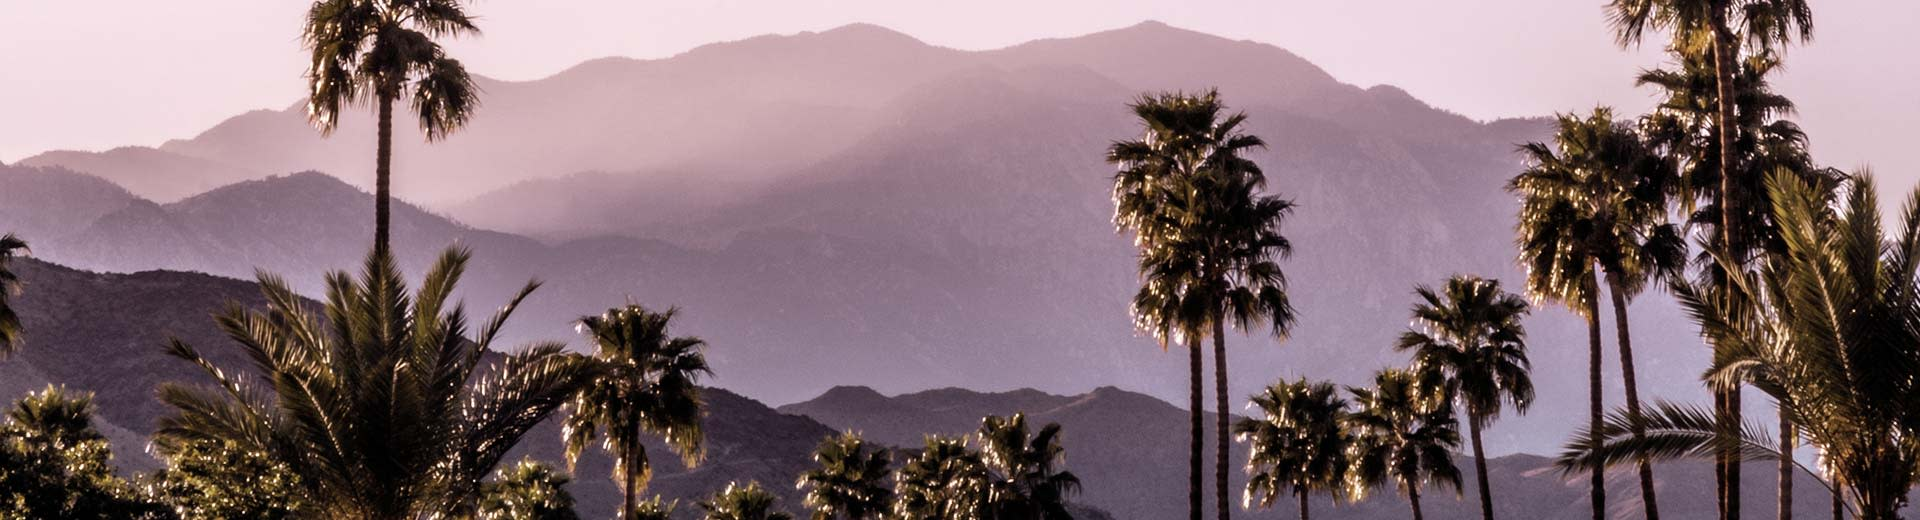 Hills in the background, while palm strees dominate the foreground on a clear and hot day in Palm Springs